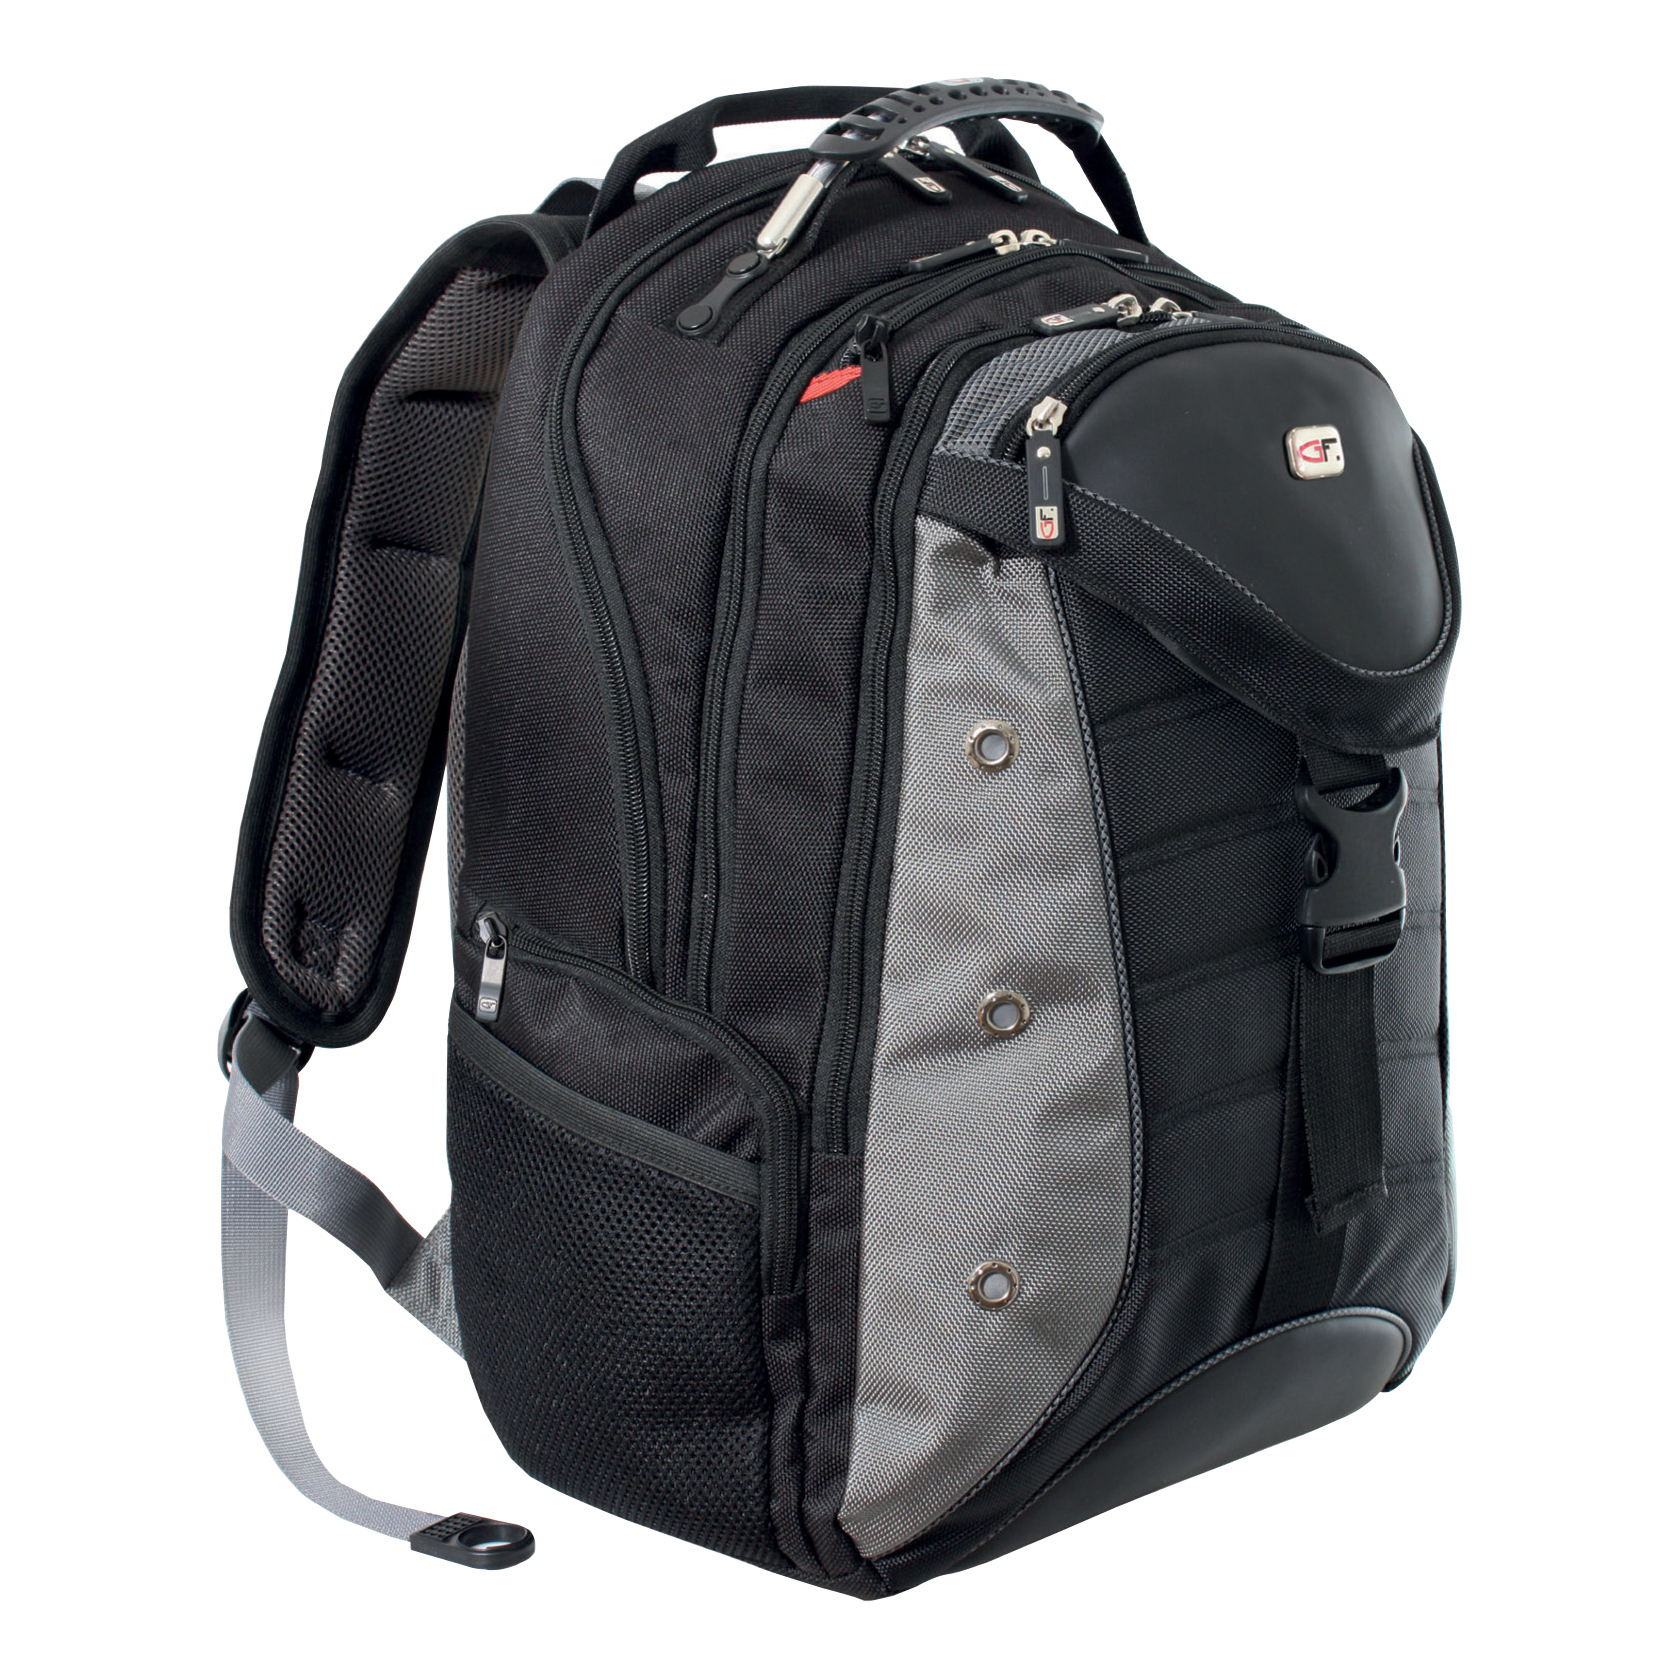 Gino Ferrari Inca 17inch Laptop Backpack with iPad/Tablet Pocket Black and Grey Ref GF503